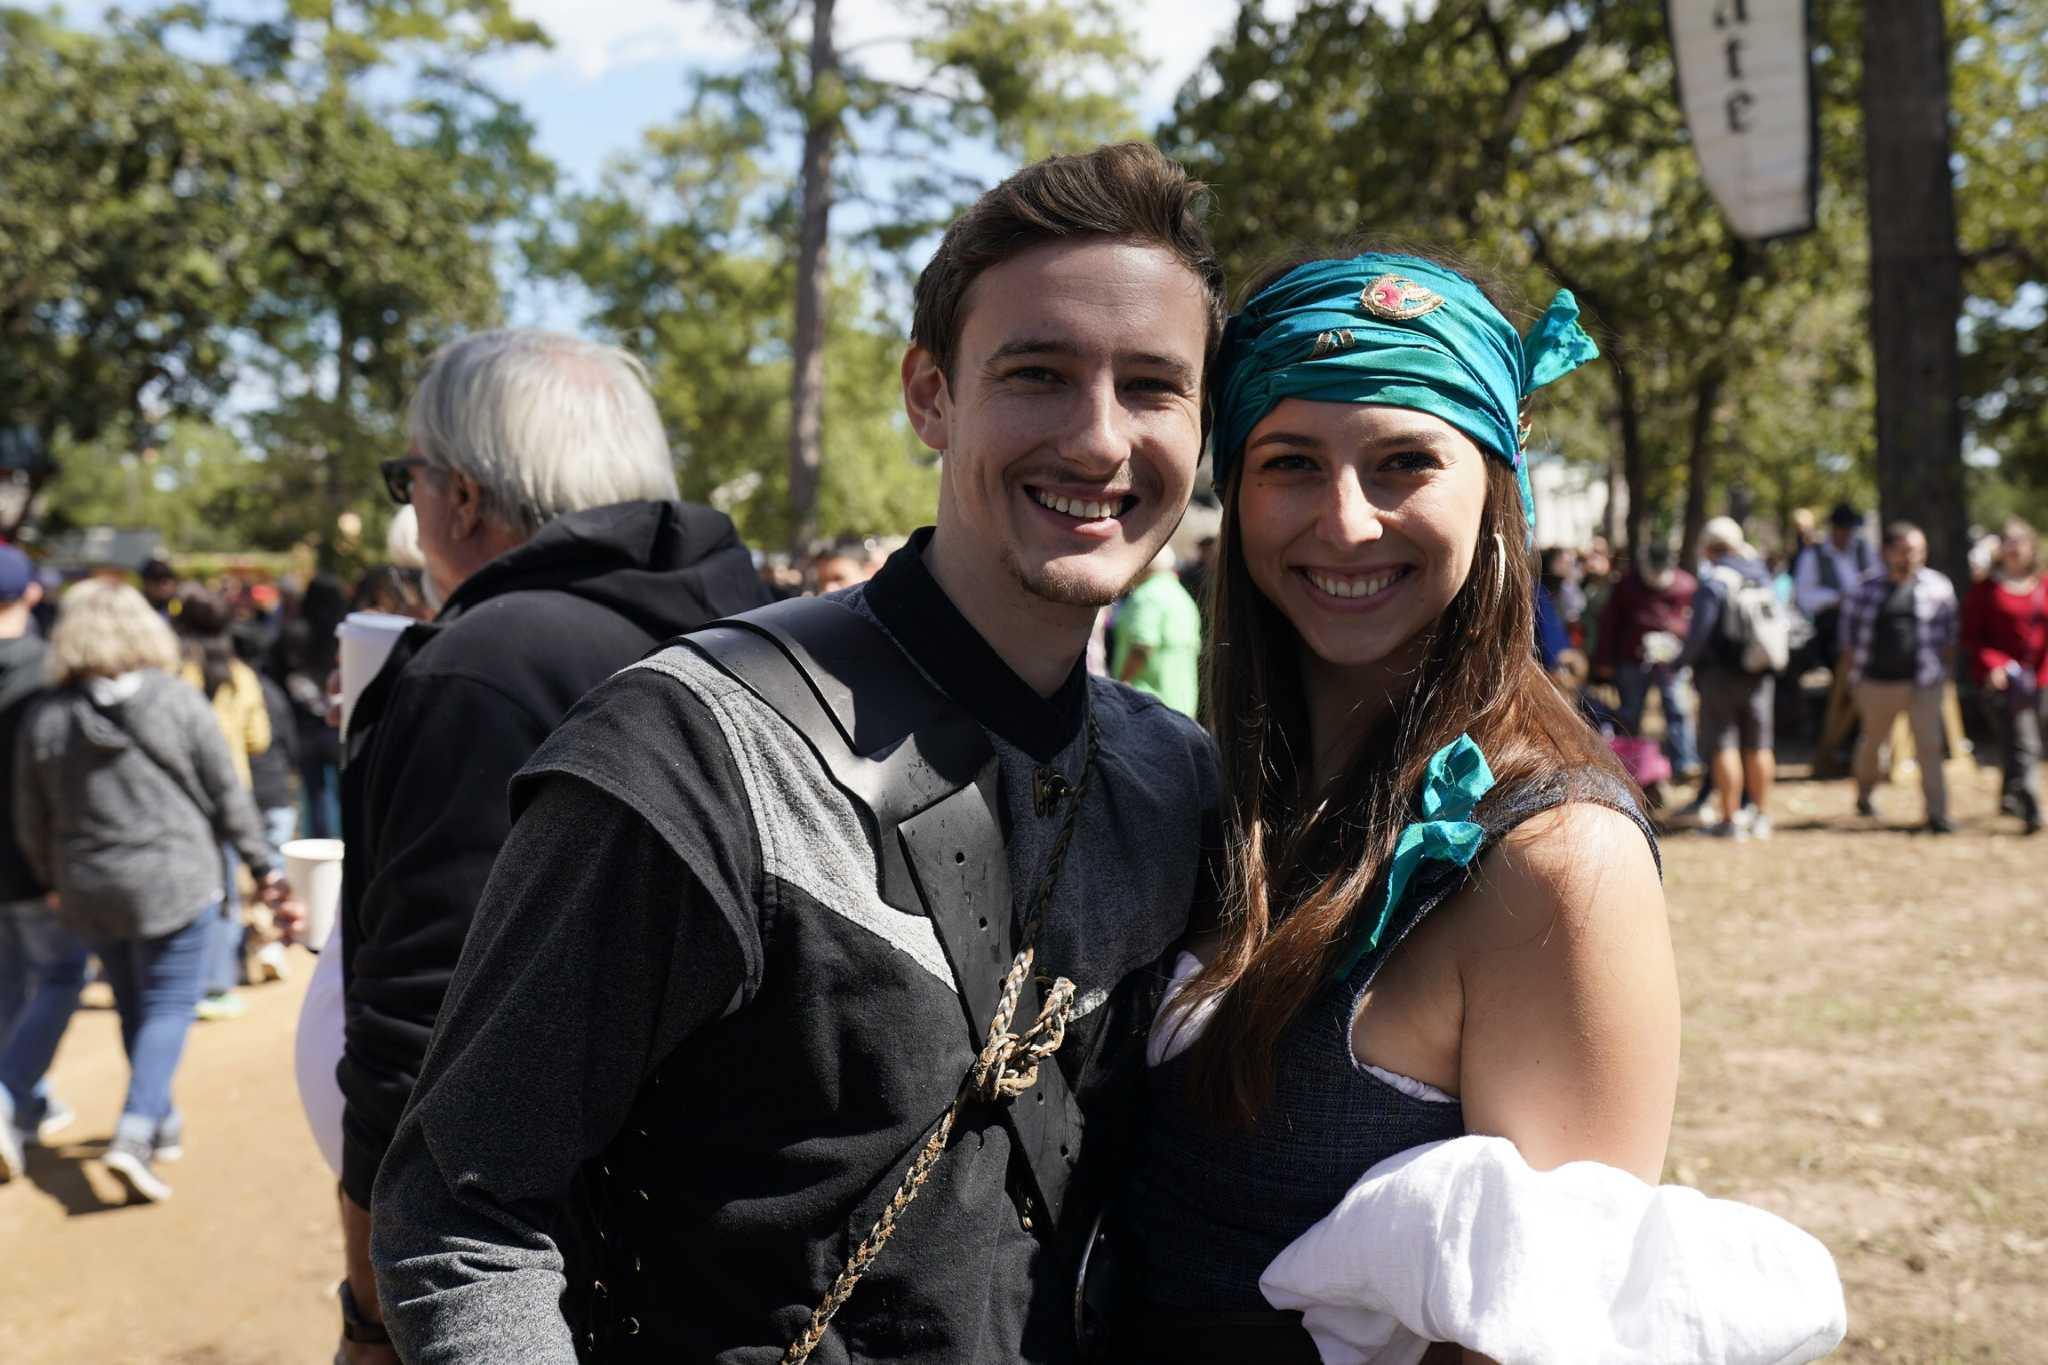 Bold costumes help ring in second week of 2019 Texas Renaissance Festival